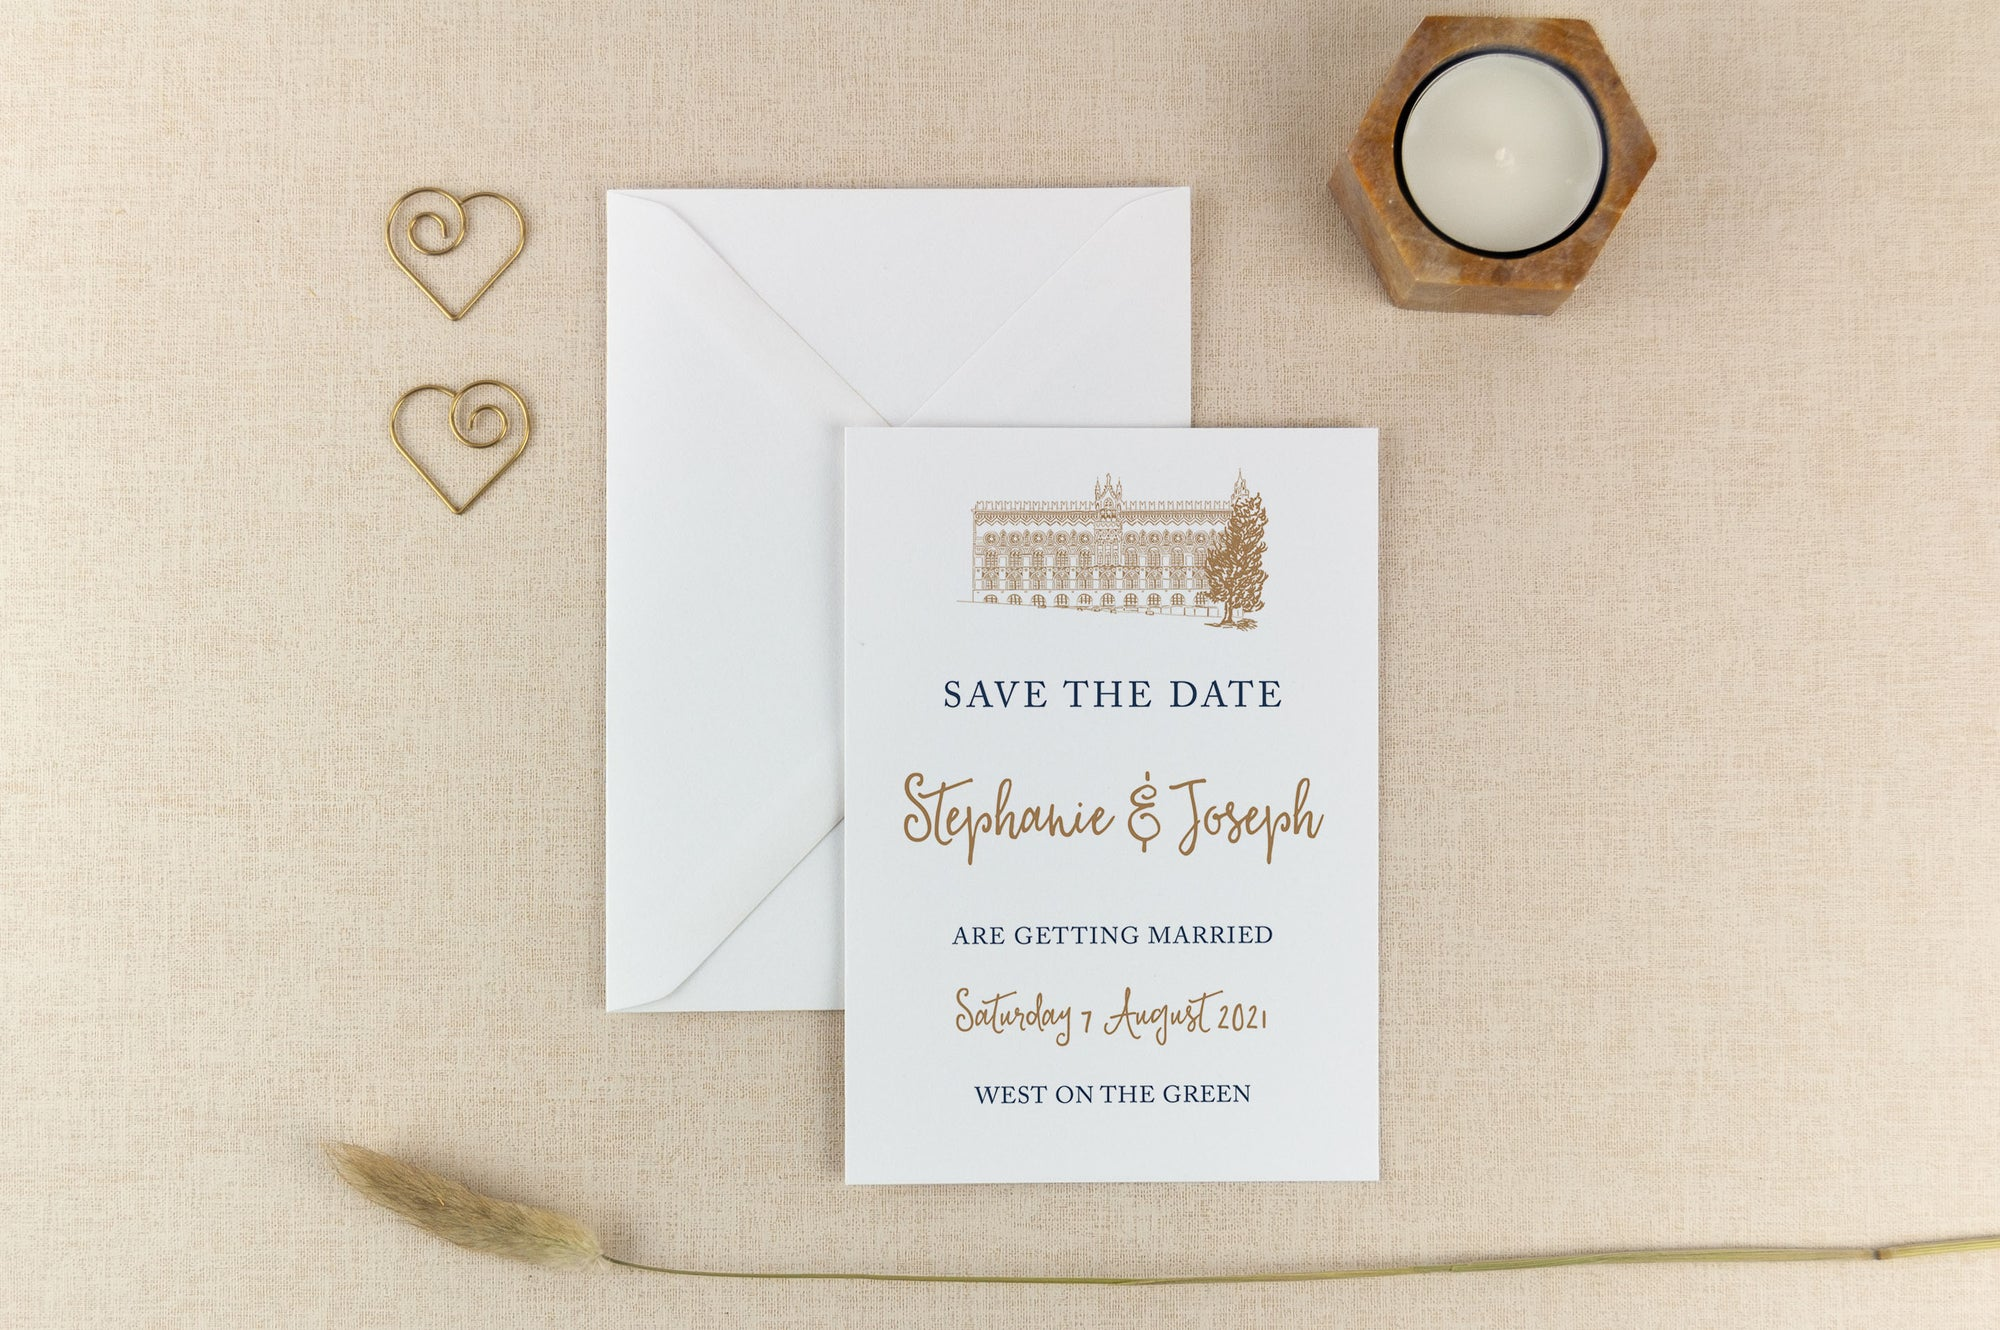 West on the Green, Calligraphy Wedding Save the Date Card